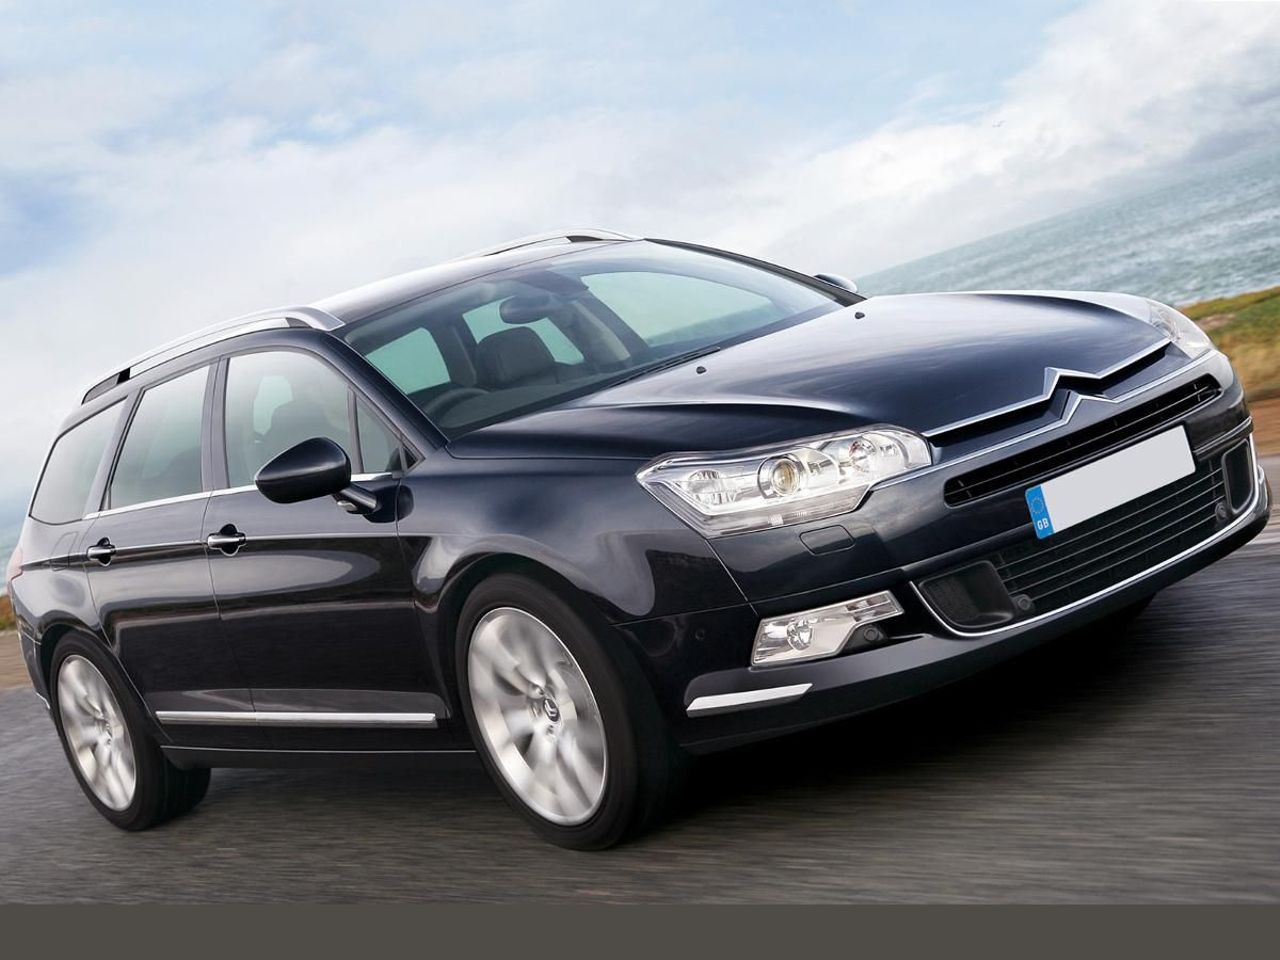 Citroen C5 Tourer estate